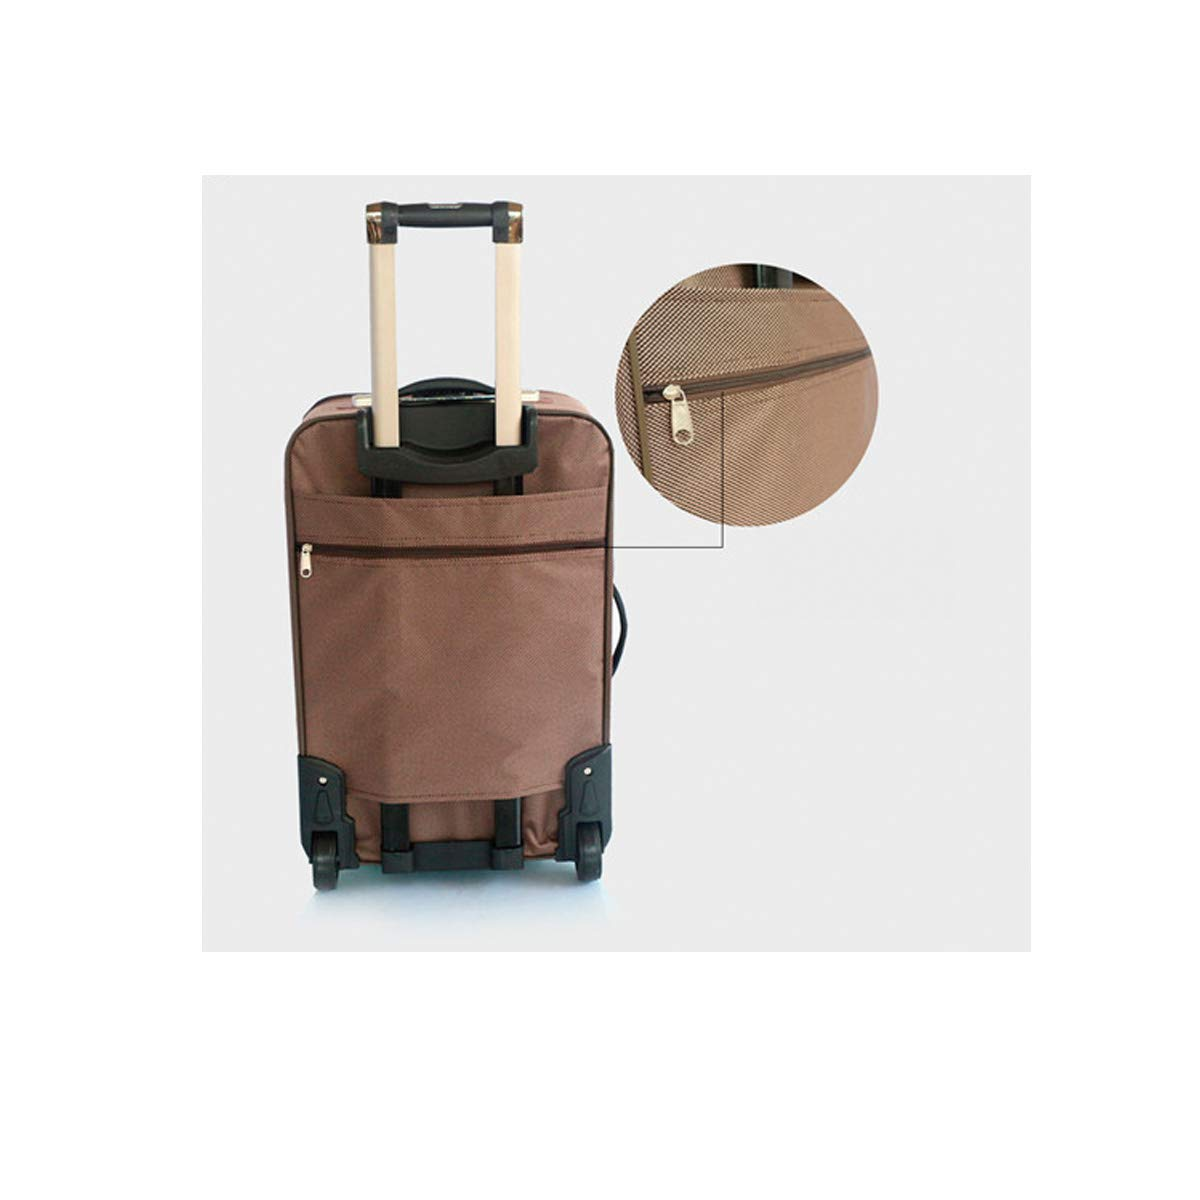 Black The Latest Style Carrying Case Travel Organizer Huijunwenti Soft Rotating Luggage Best Gift Trolley Case 20英寸 Color : Khaki, Size : 20 Simple